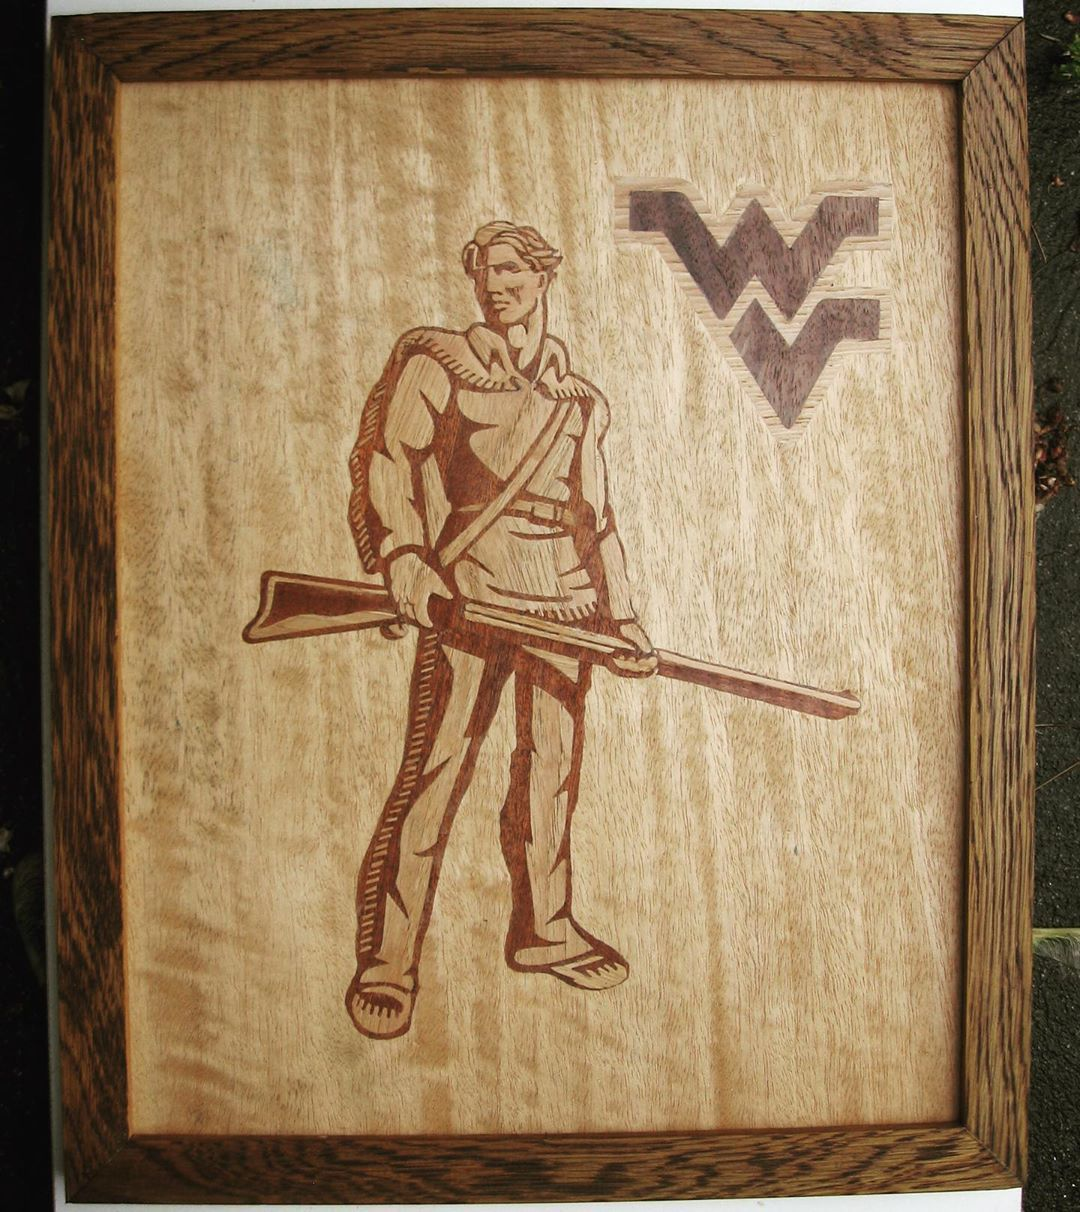 Made this for family. Custom orders available, see Etsy link in my bio!  #marquetry #woodwork #westvirginia #wvu #mountaineers #football #art #artist #marquetryart #artistic #woodart #college #collegefootball #etsy #homemade #handmade #design #interiordesign #wallart #smallbusiness #etsyshop #christmasshopping #ideas #wood #framed #wvumountaineers Made this for family. Custom orders available, see Etsy link in my bio!  #marquetry #woodwork #westvirginia #wvu #mountaineers #football #art #artist #wvumountaineers